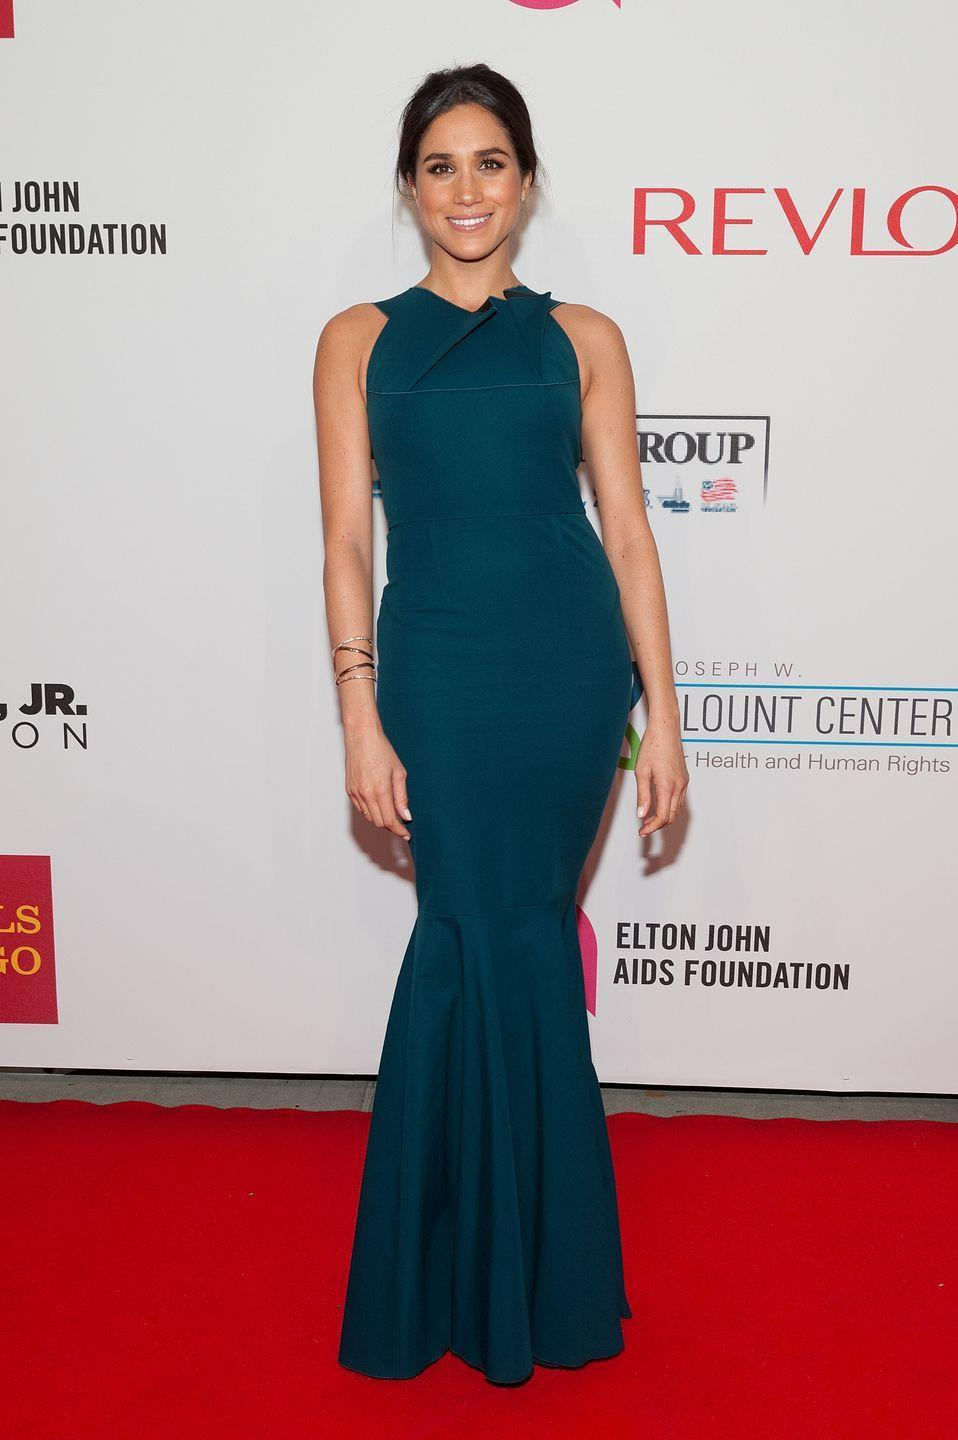 <p>And it's not just royals who love a gown moment—so do actresses, as Meghan demoed here in a fishtail dress at the Elton John AIDS Foundation's 13th Annual Benefit that same year (yep, <em>before </em>she was a royal).</p>